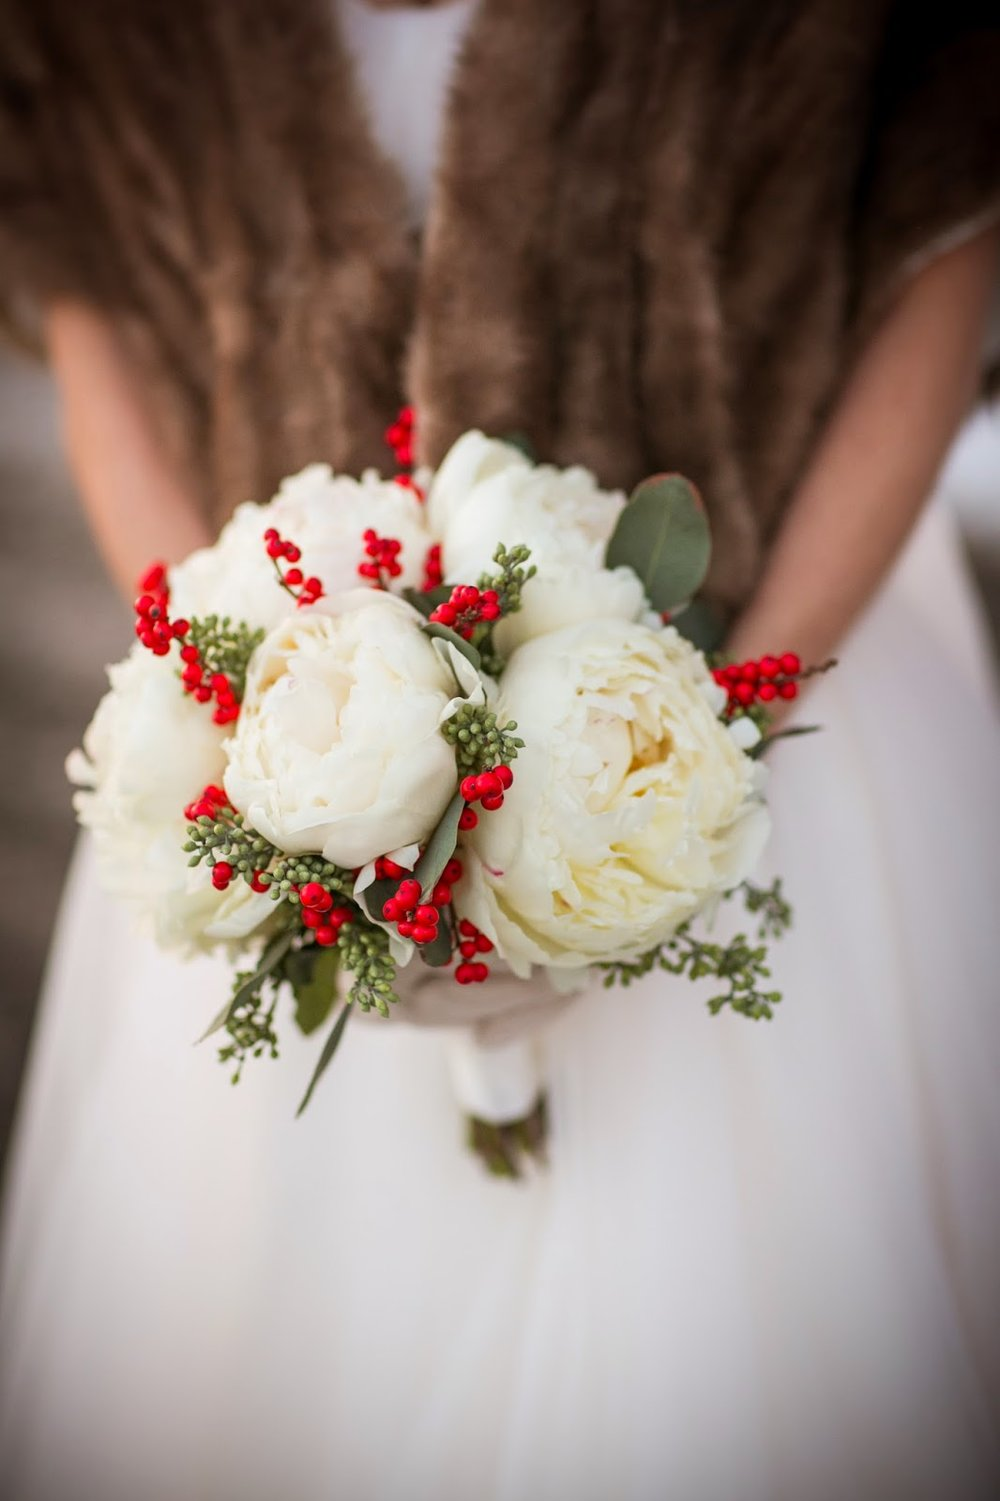 white peony & ilex berry bouquet : winter wedding : les fleurs : zev fisher photography : willowdale estate